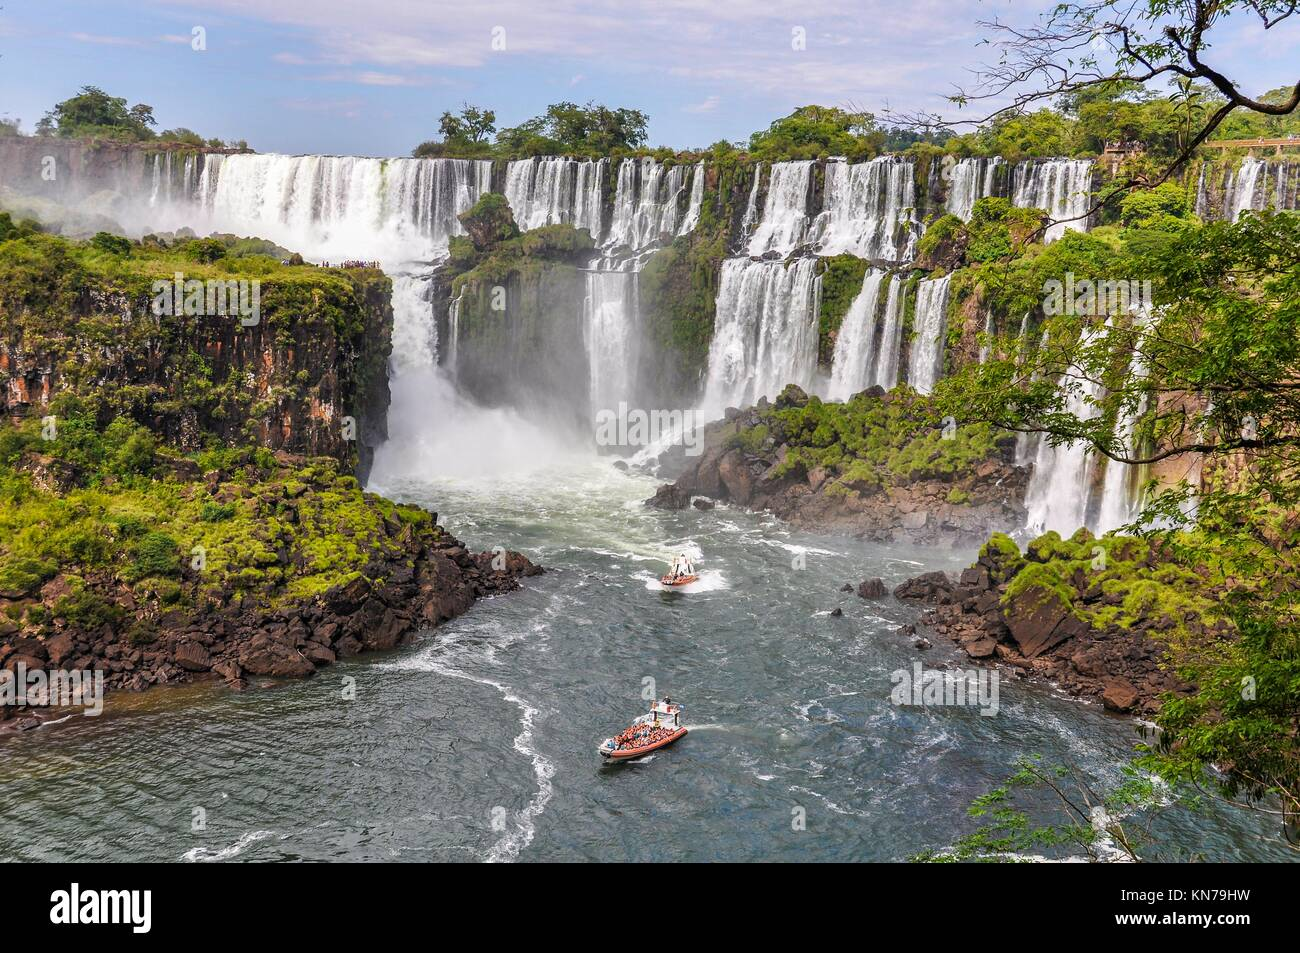 Boats around Iguazu Falls, one of the New Seven Wonders of Nature, Argentina. - Stock Image